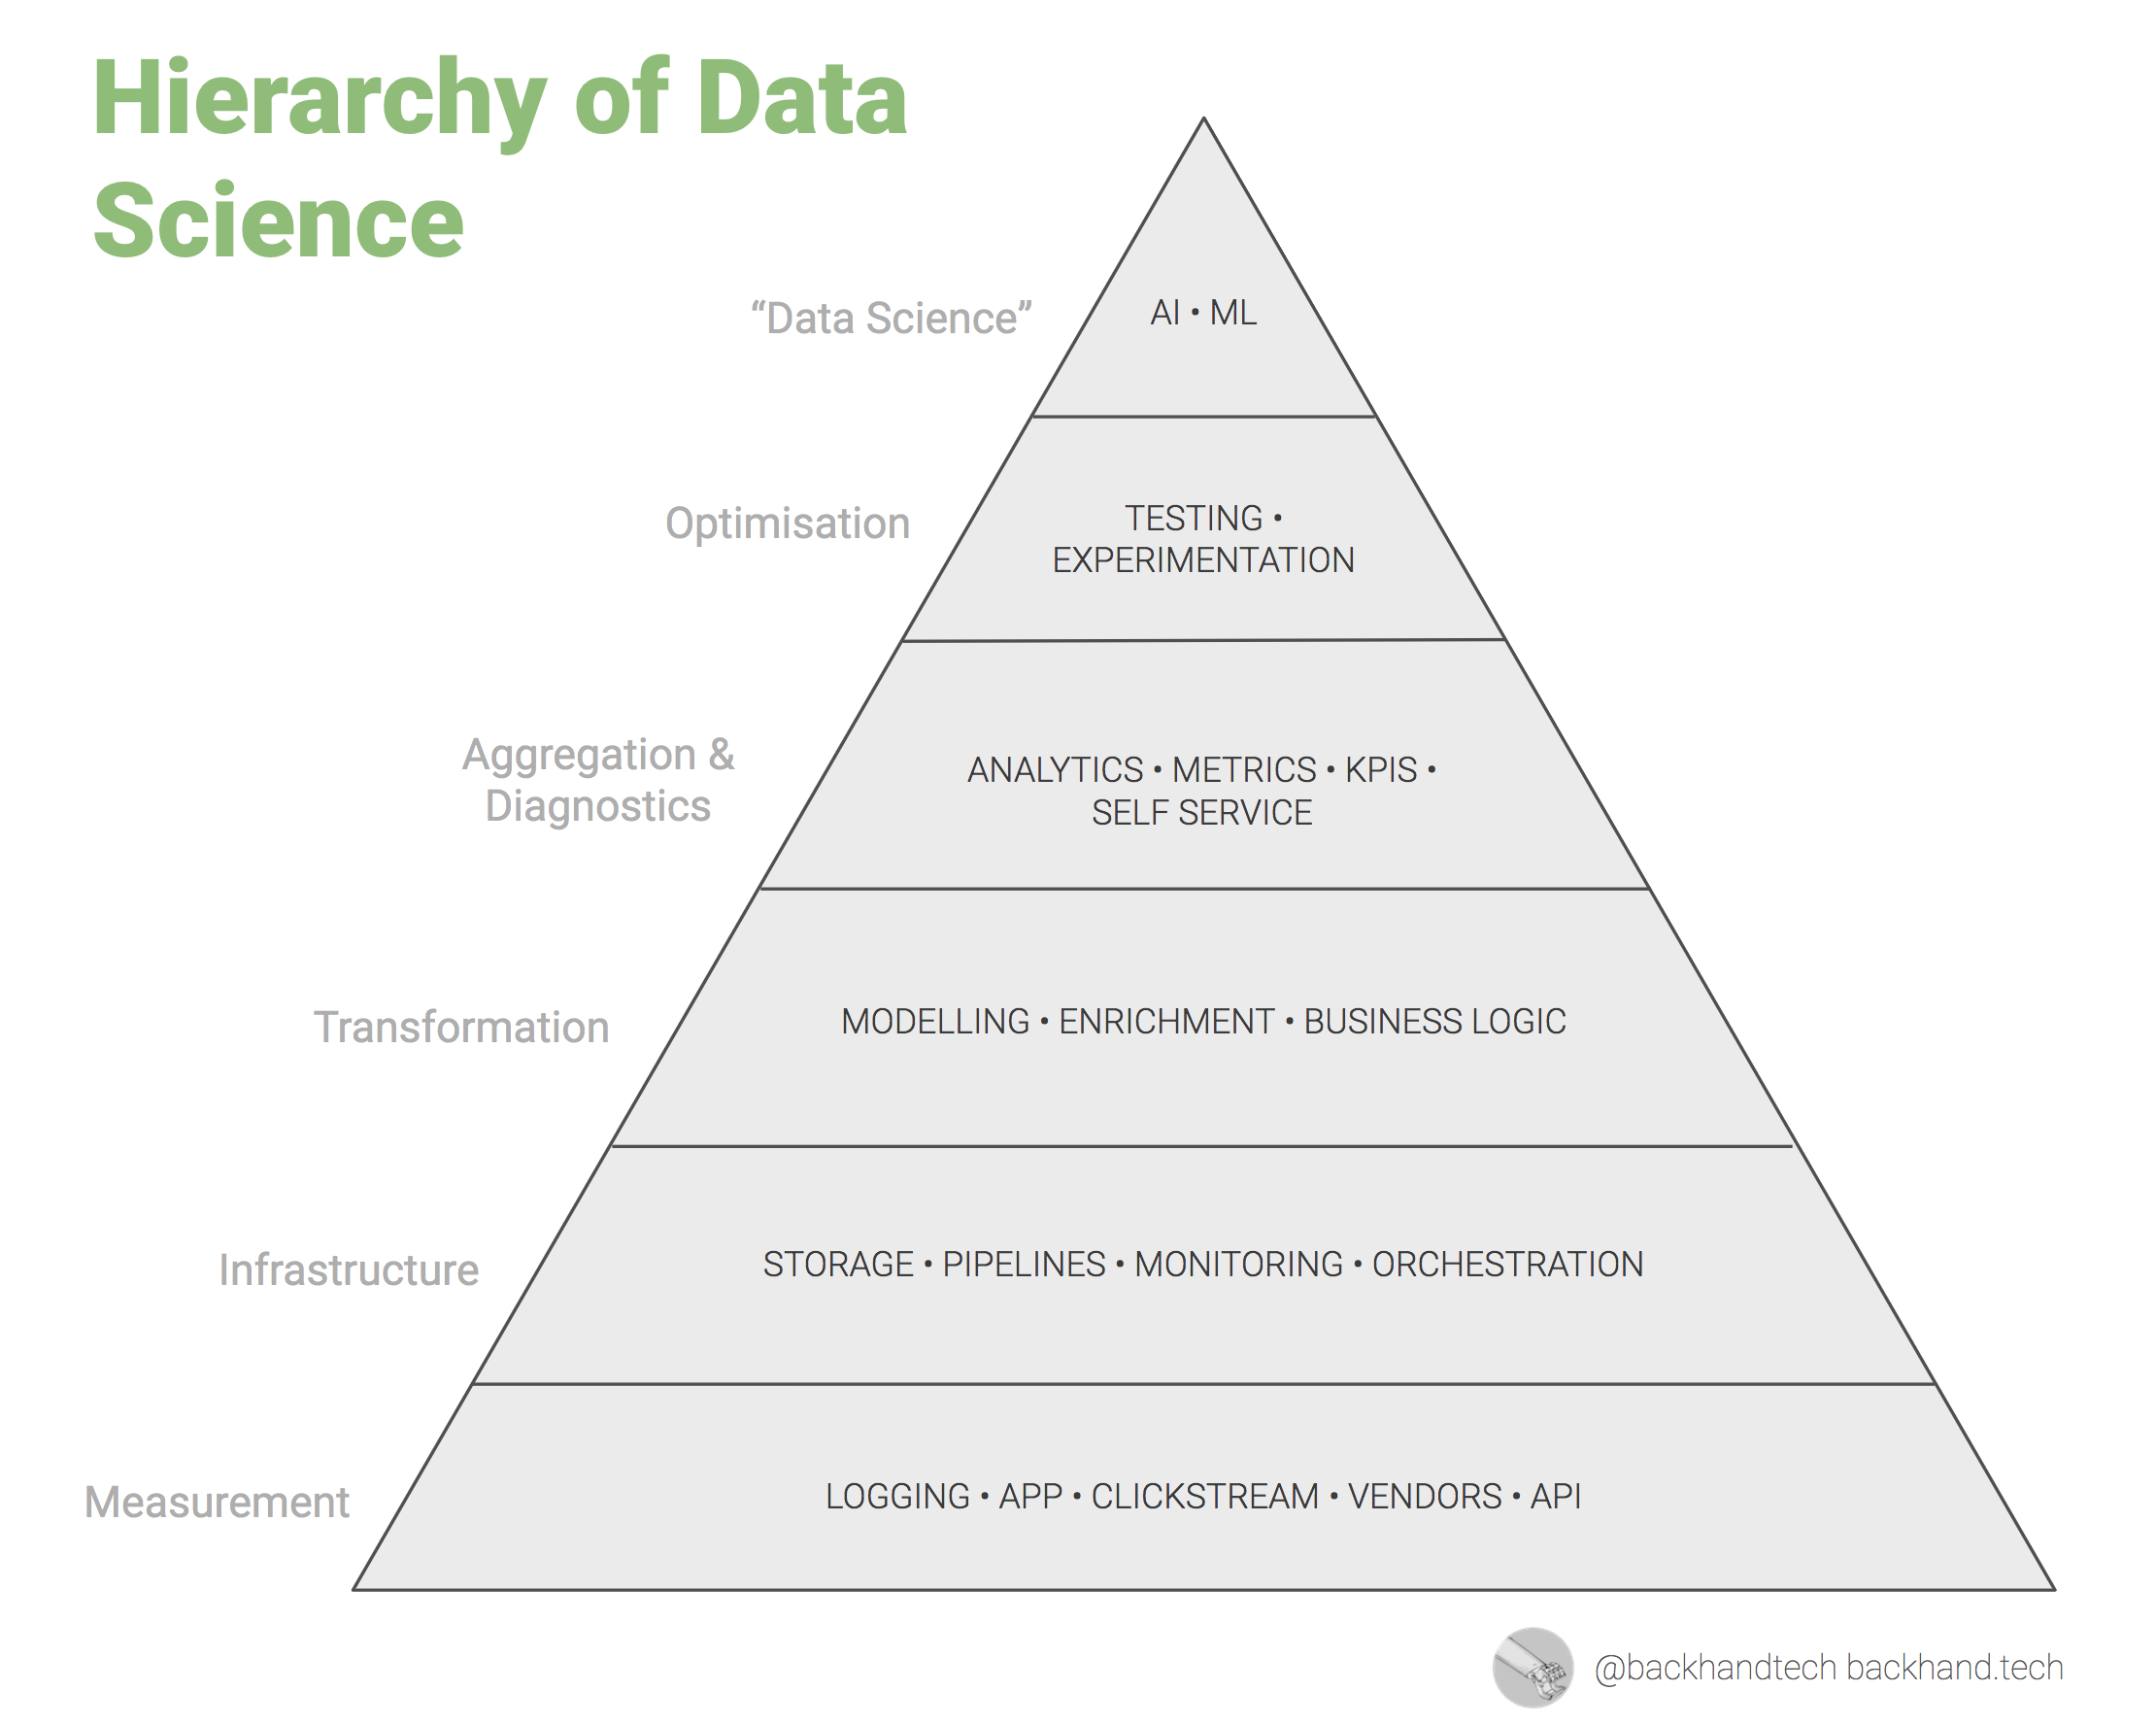 The hierarchy of Data Science